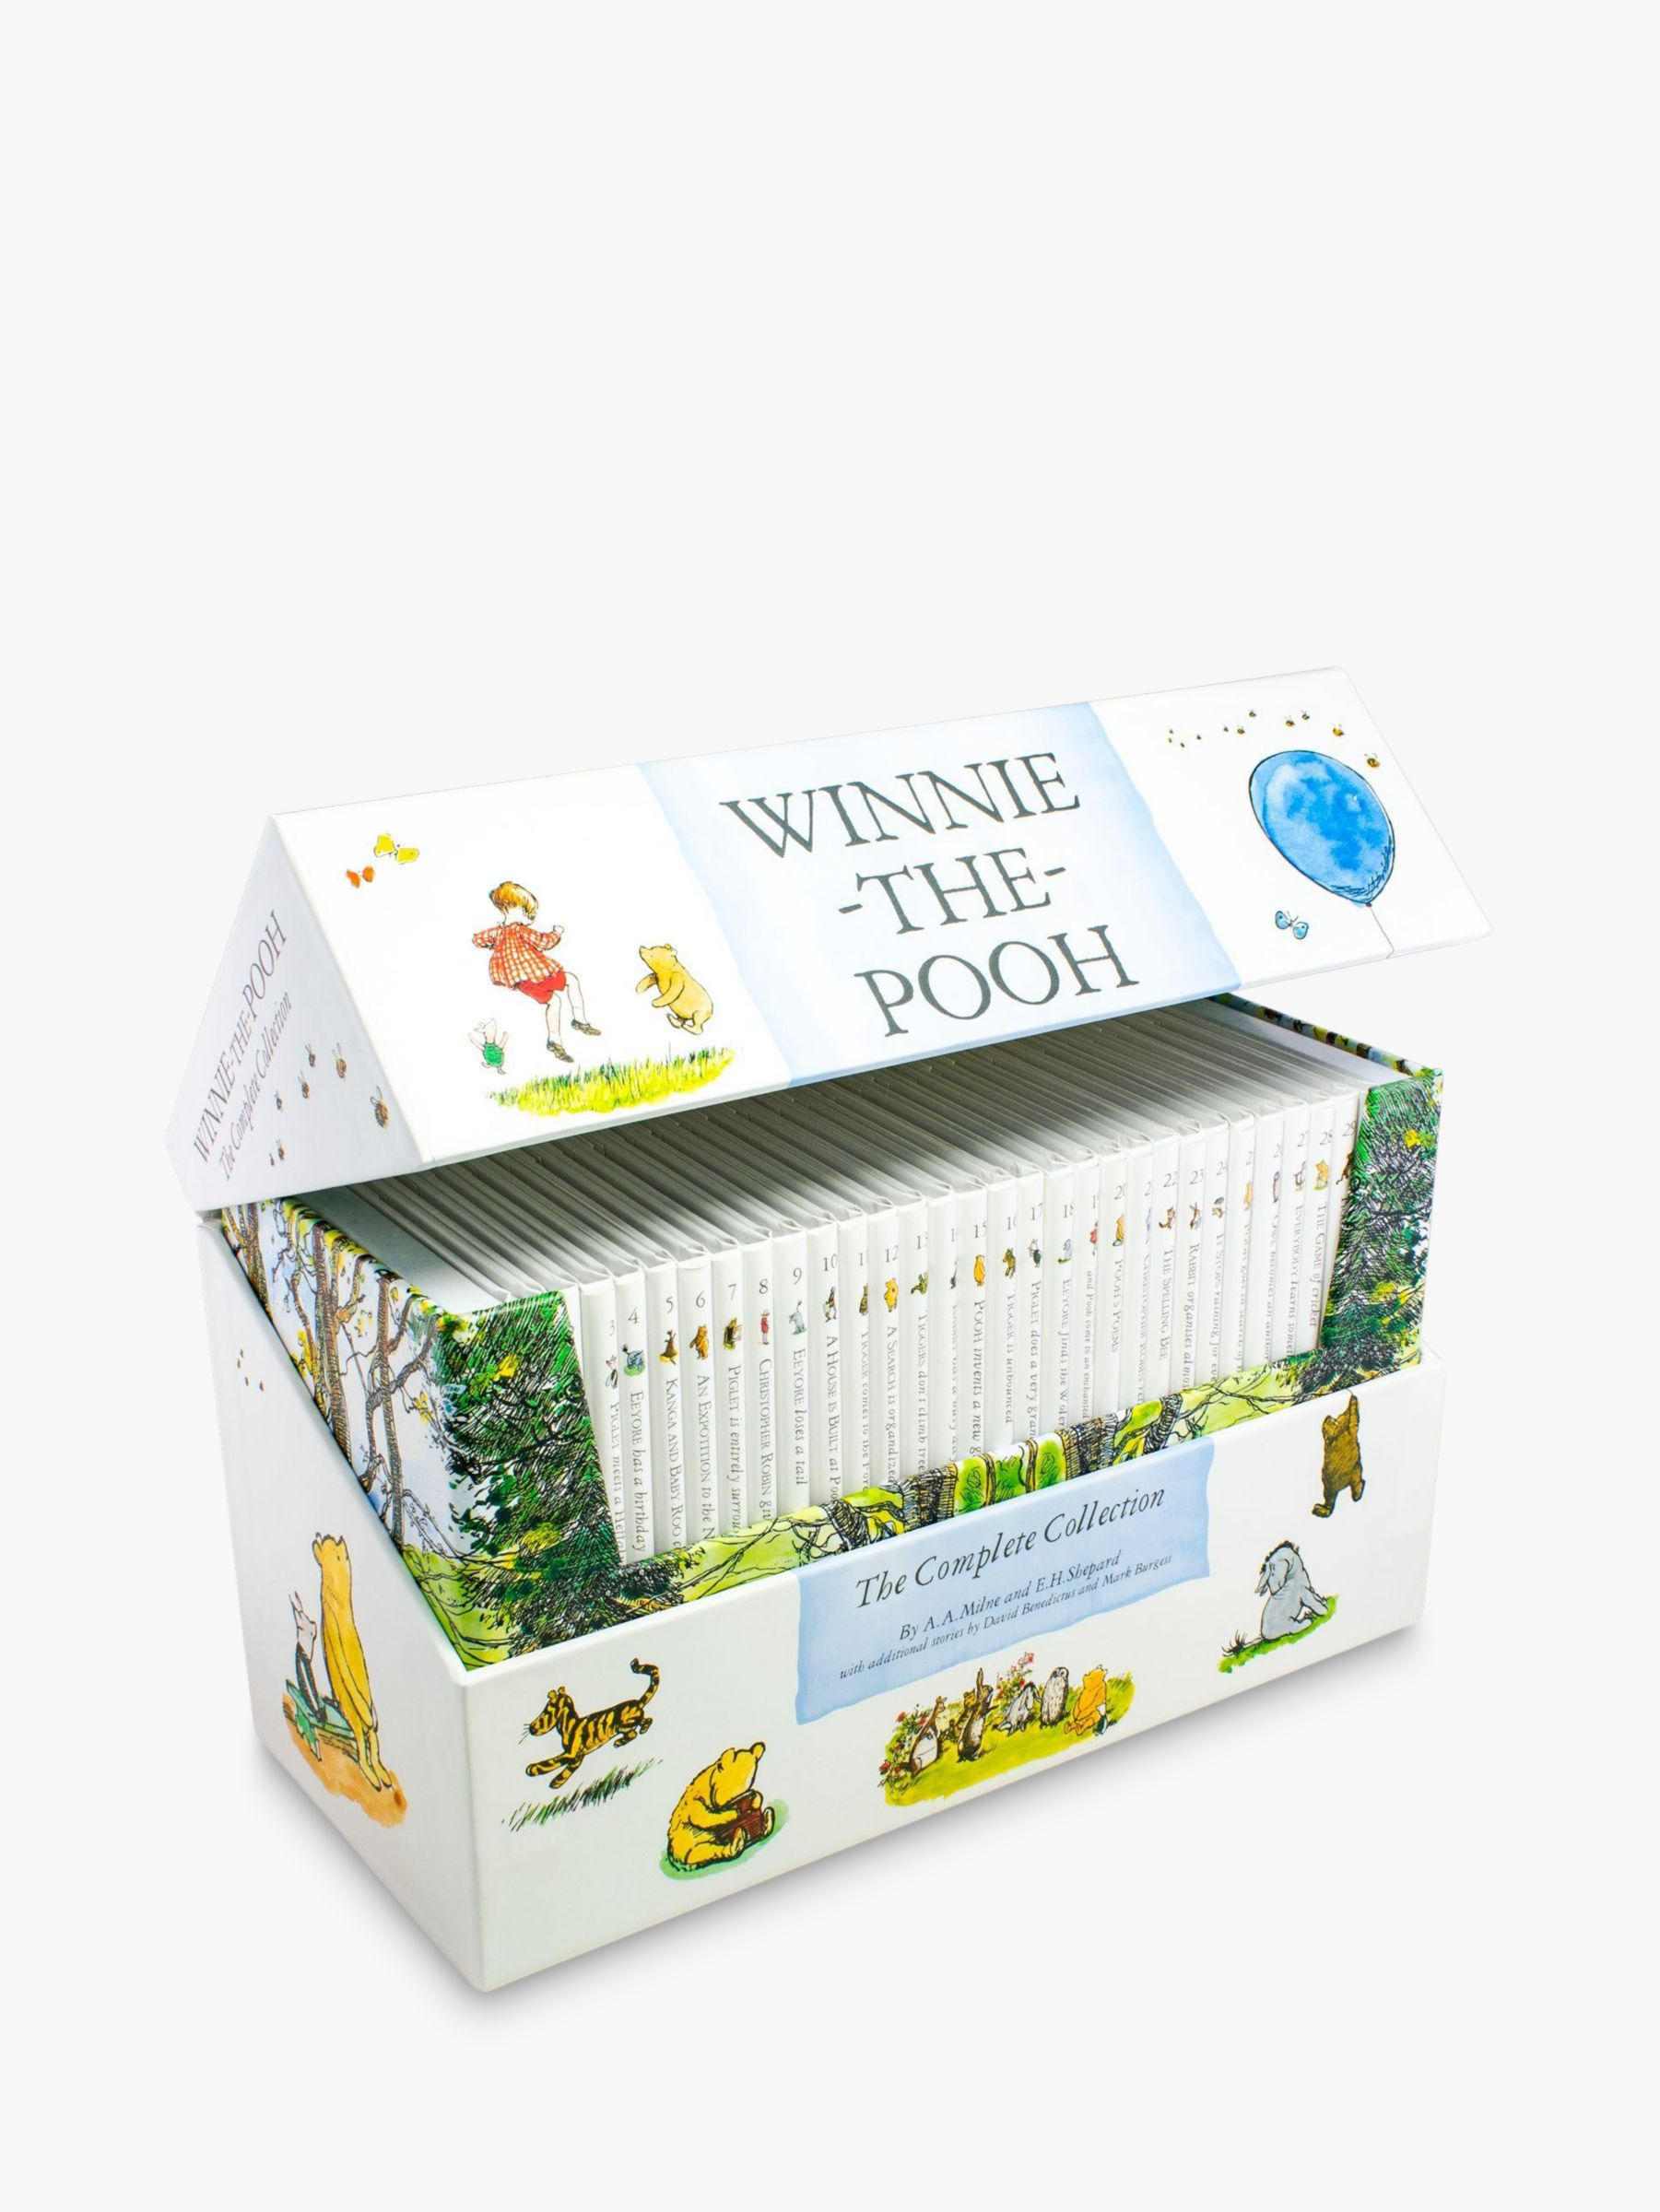 Winnie the pooh Winnie The Pooh The Complete Collection Children's Books